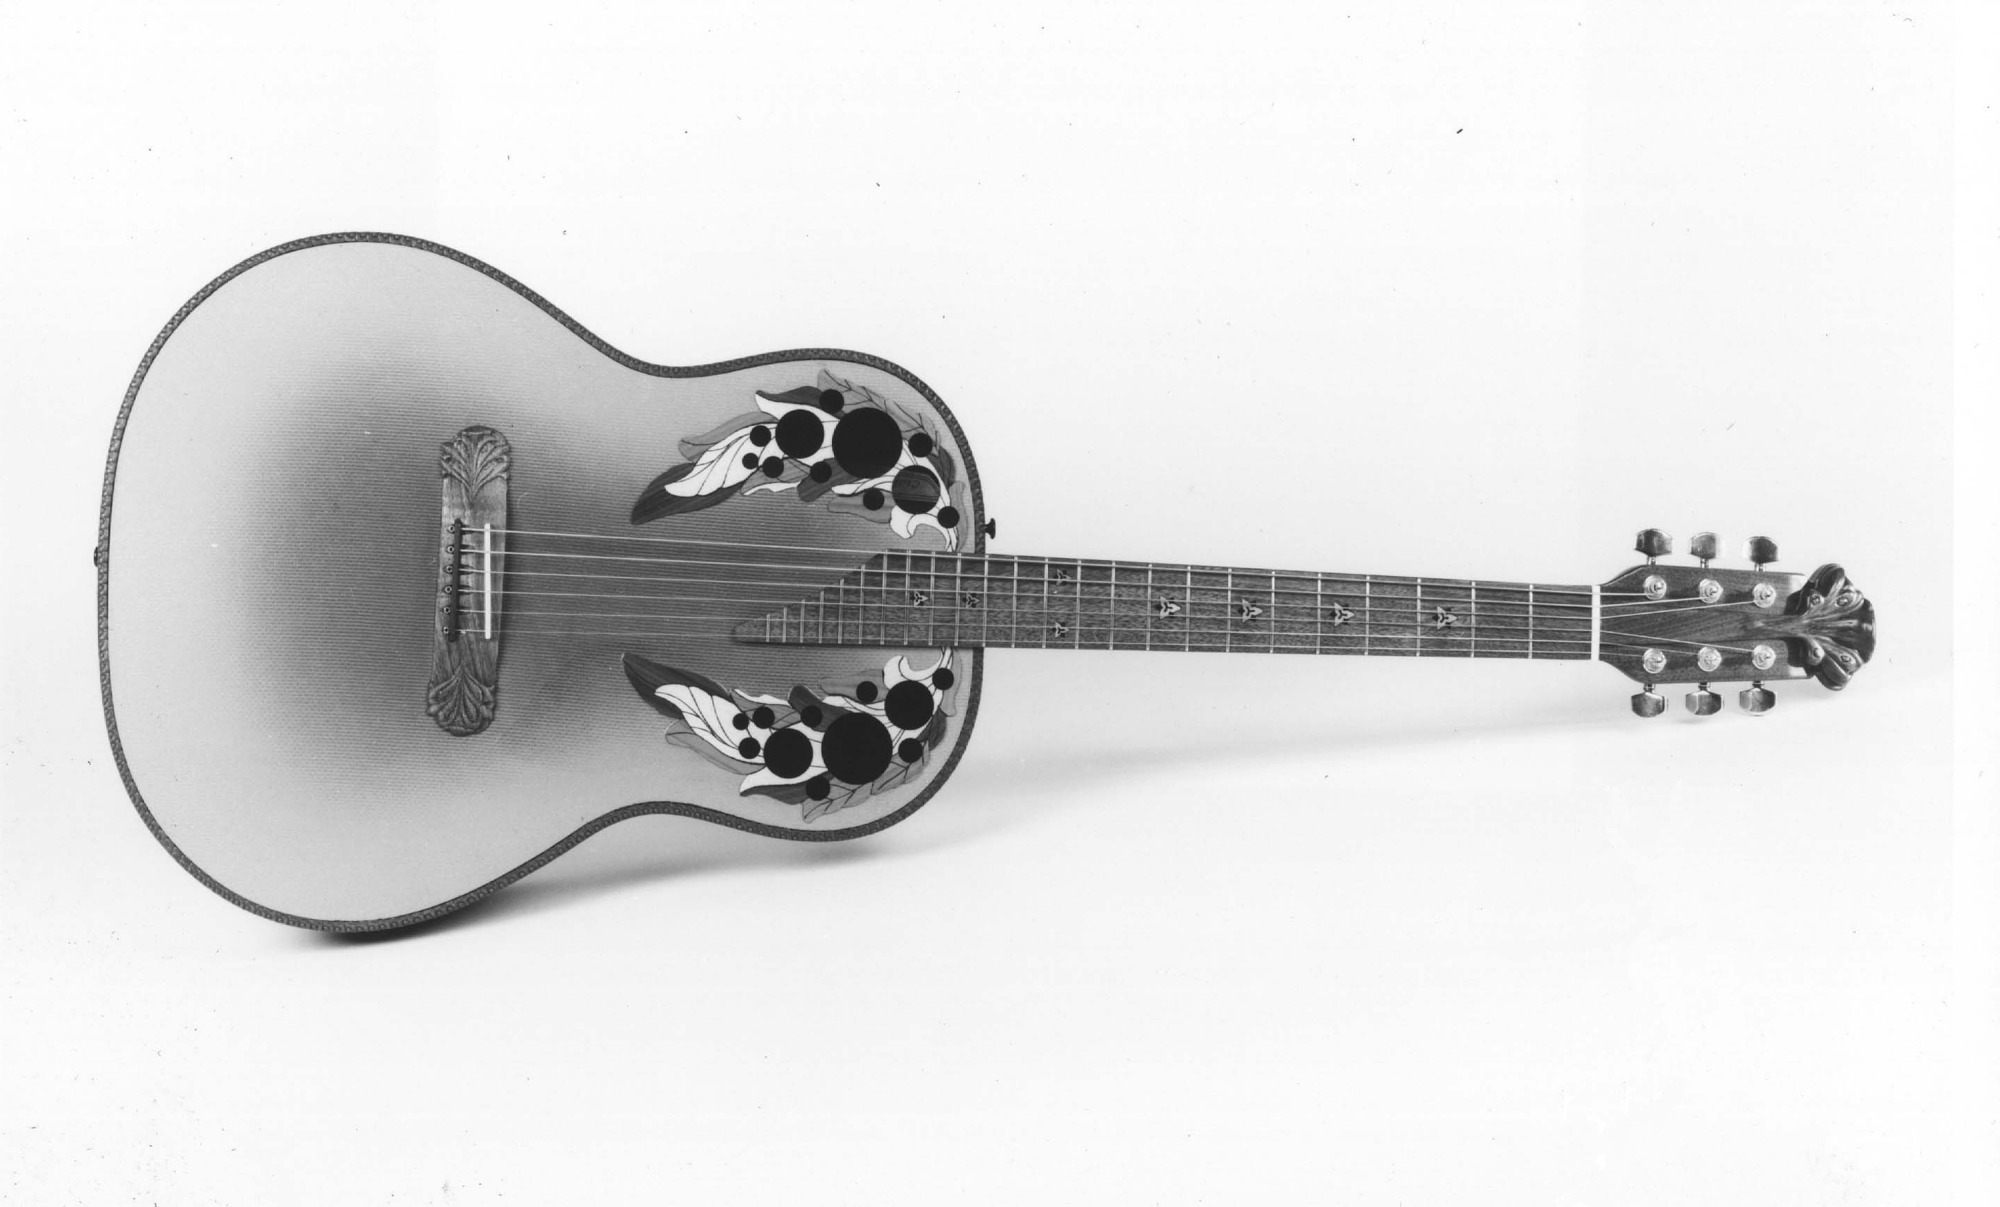 dating-ovation-guitars-by-serial-number